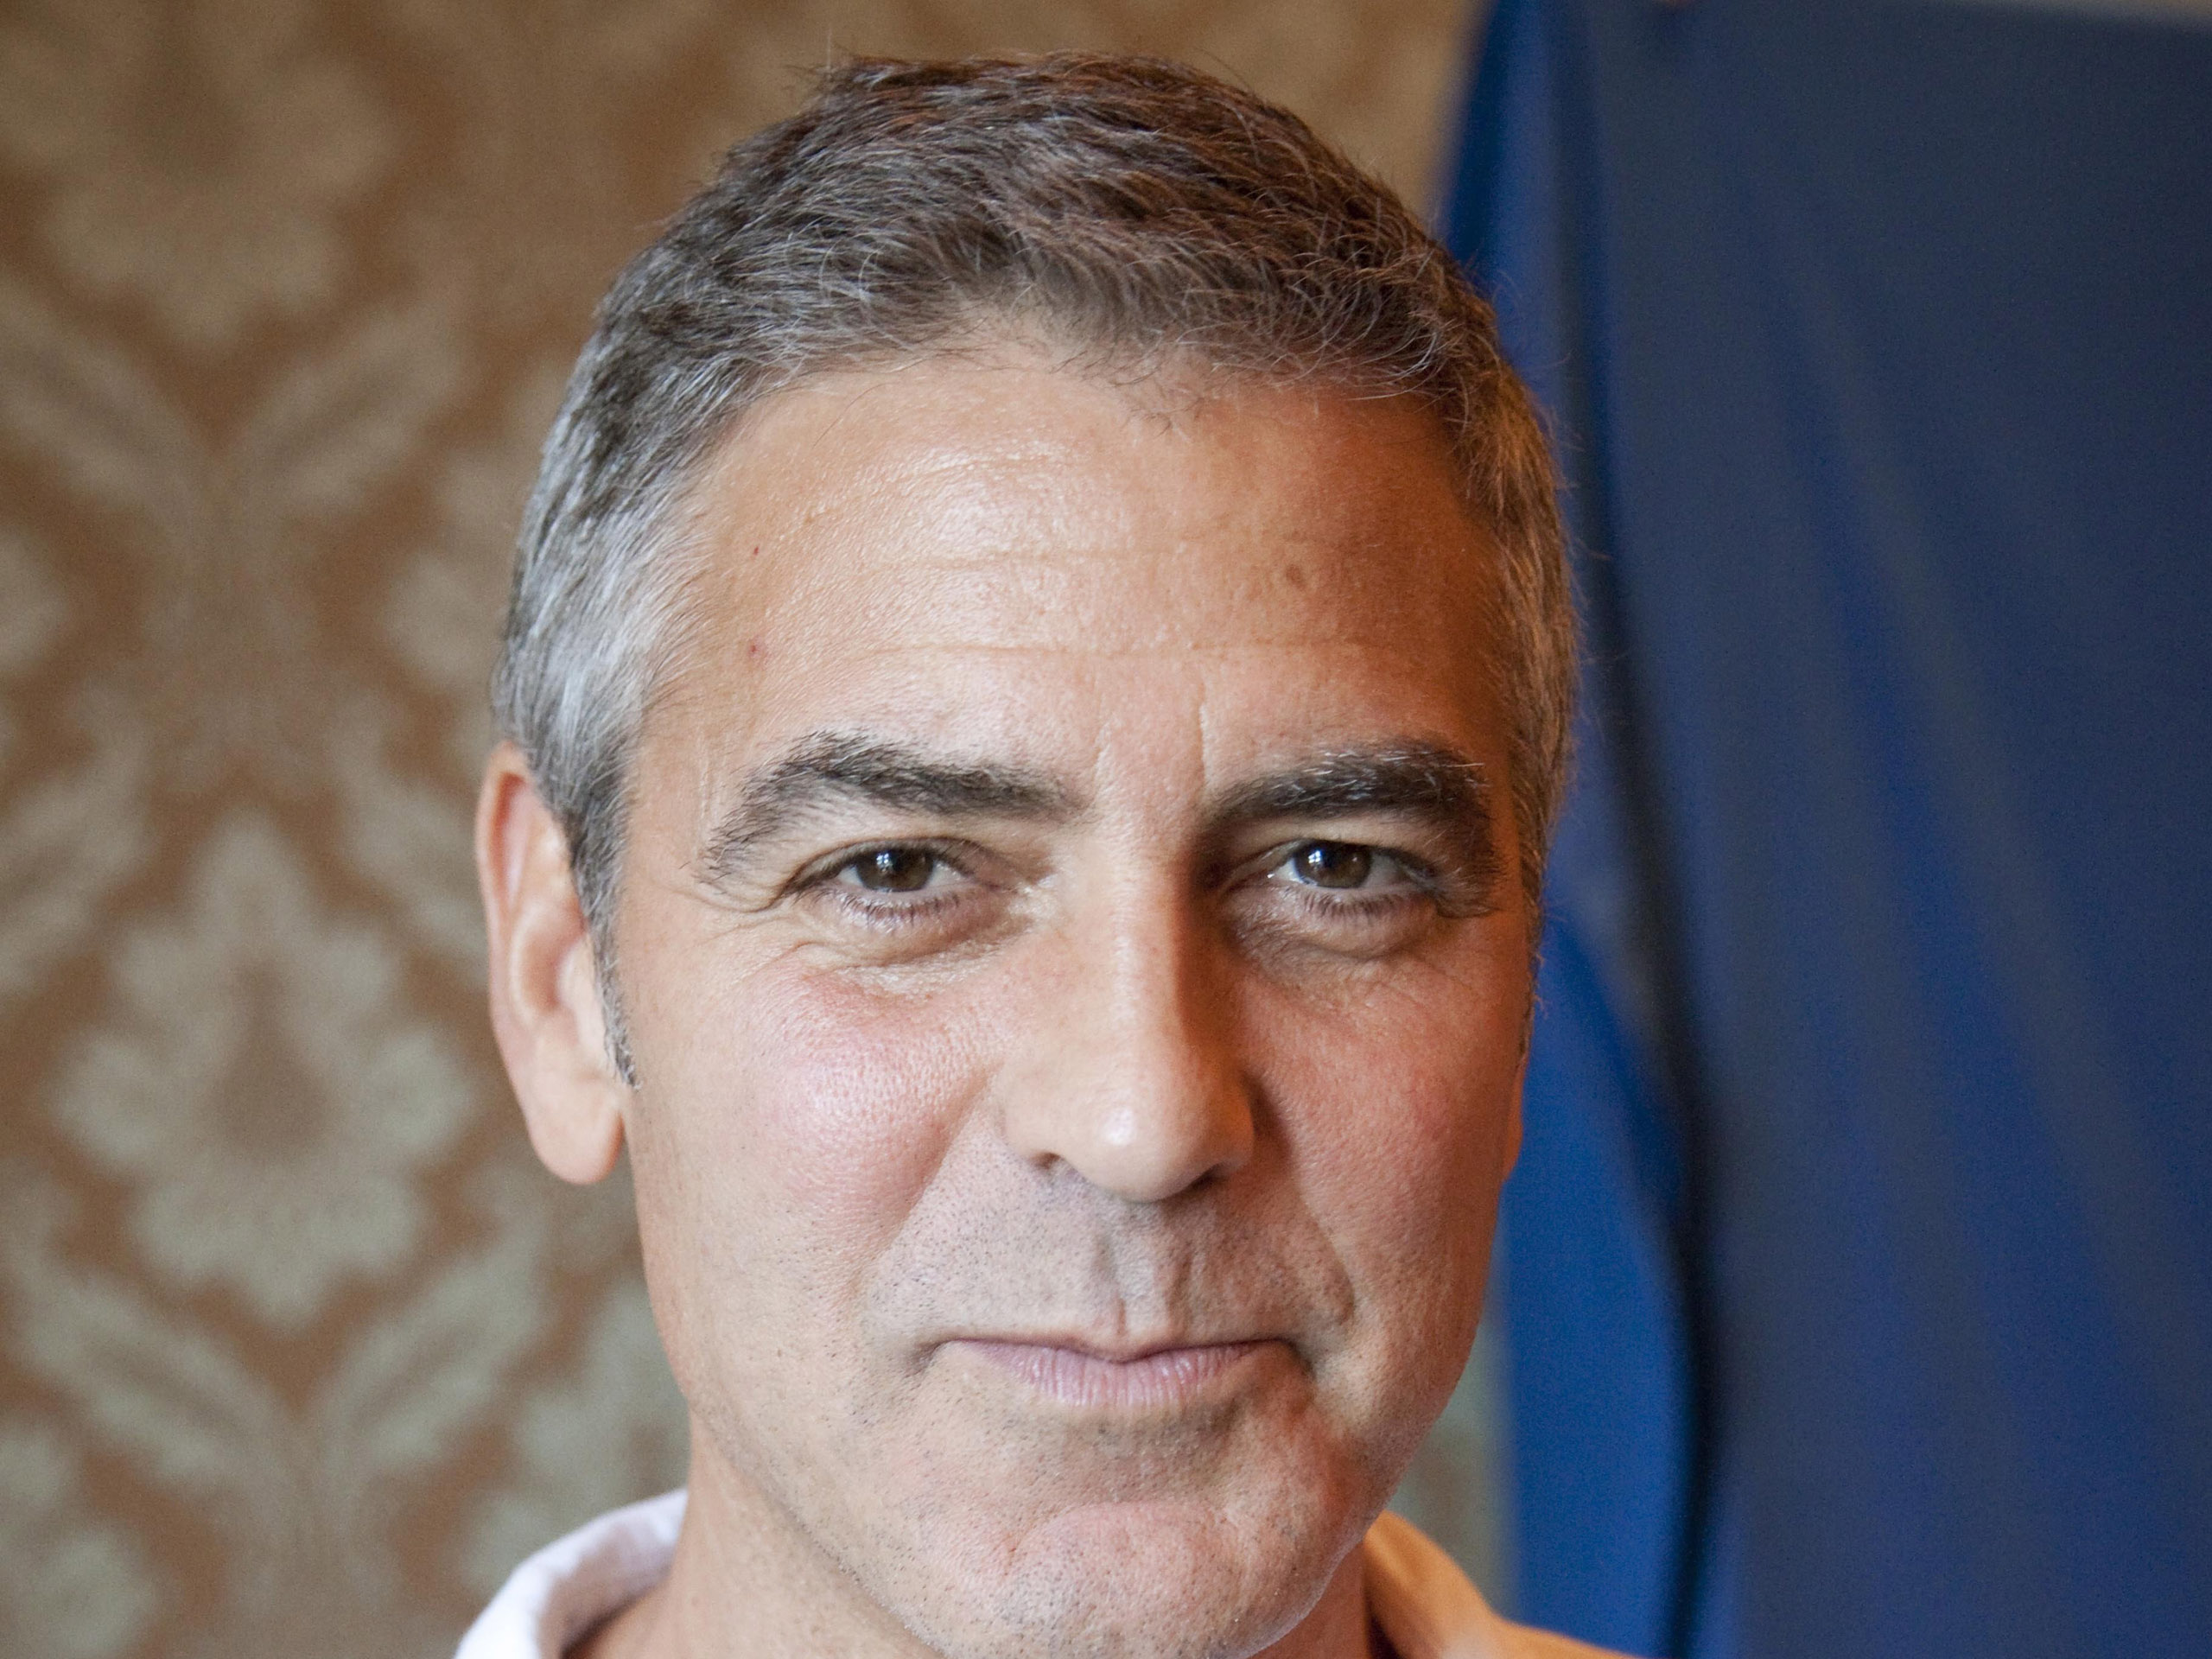 george clooney face 608